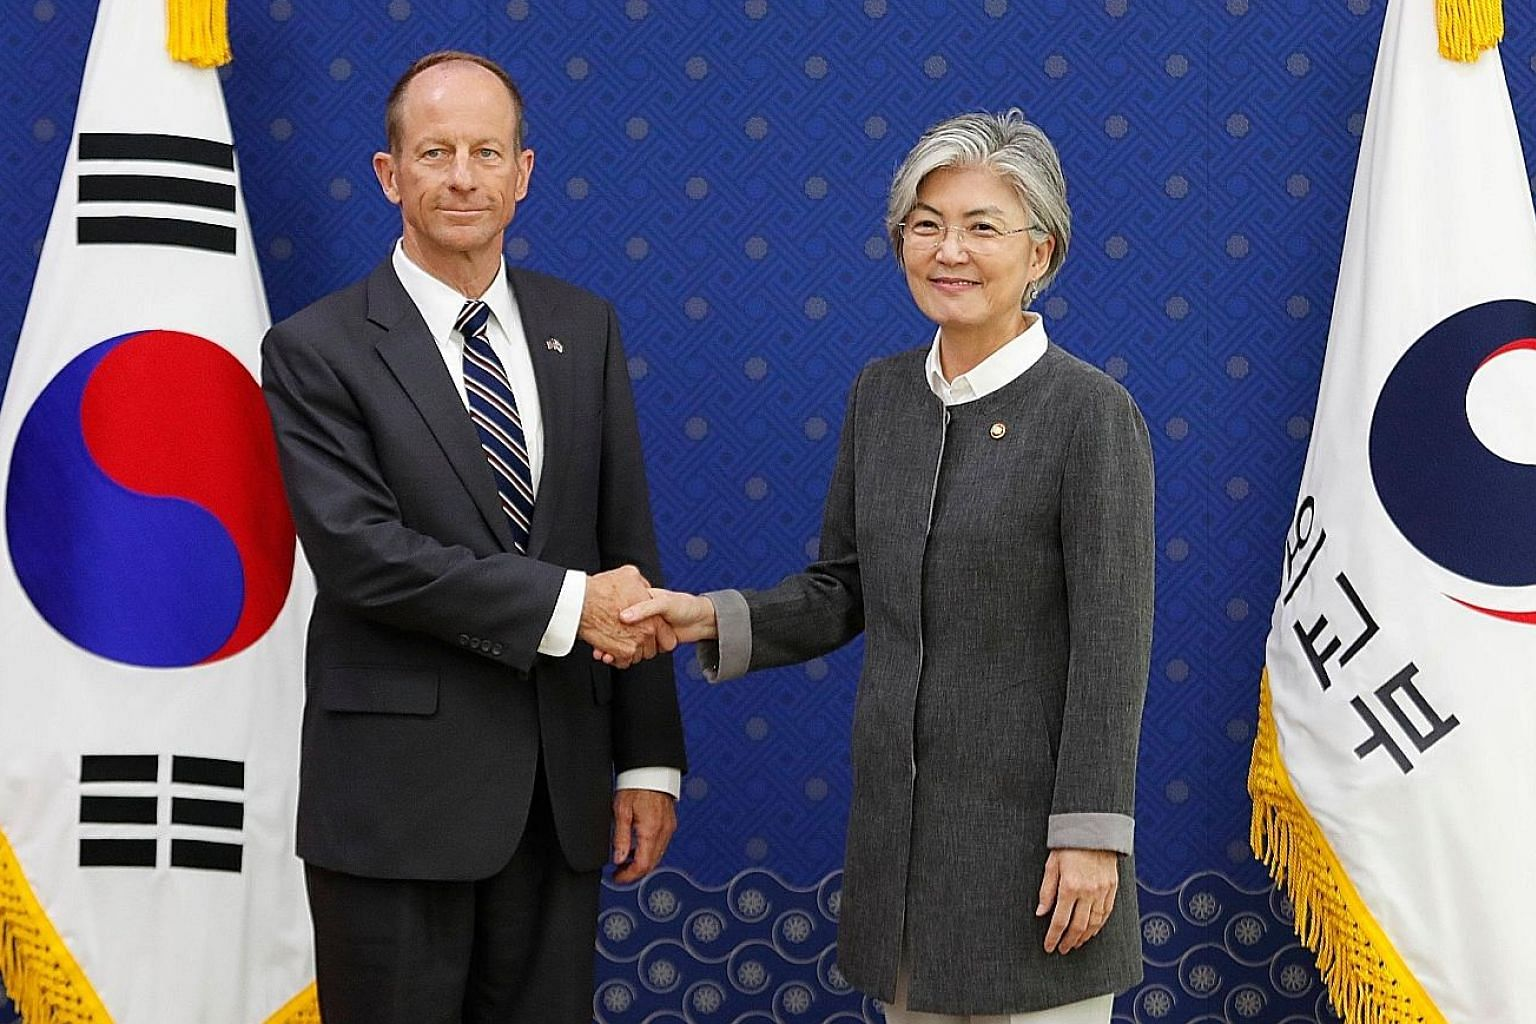 US Assistant Secretary of State for East Asian and Pacific Affairs David Stilwell meeting South Korean Foreign Minister Kang Kyung-wha on the last day of his three-day visit to Seoul yesterday.